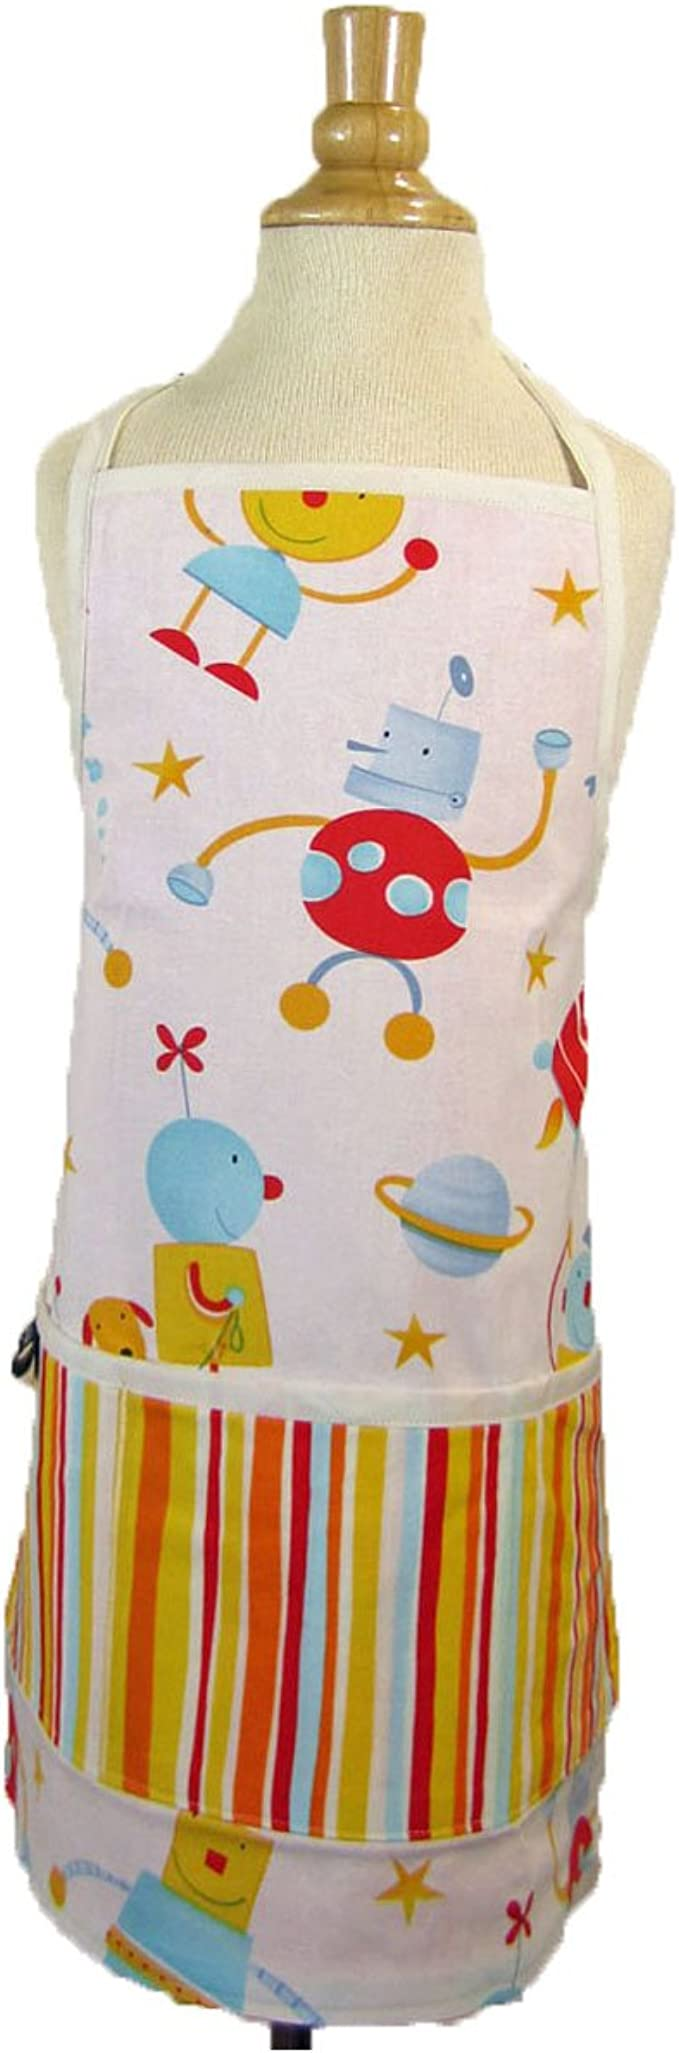 Reversible apron Fits age 3-5 years approx Fox apron Childs apron